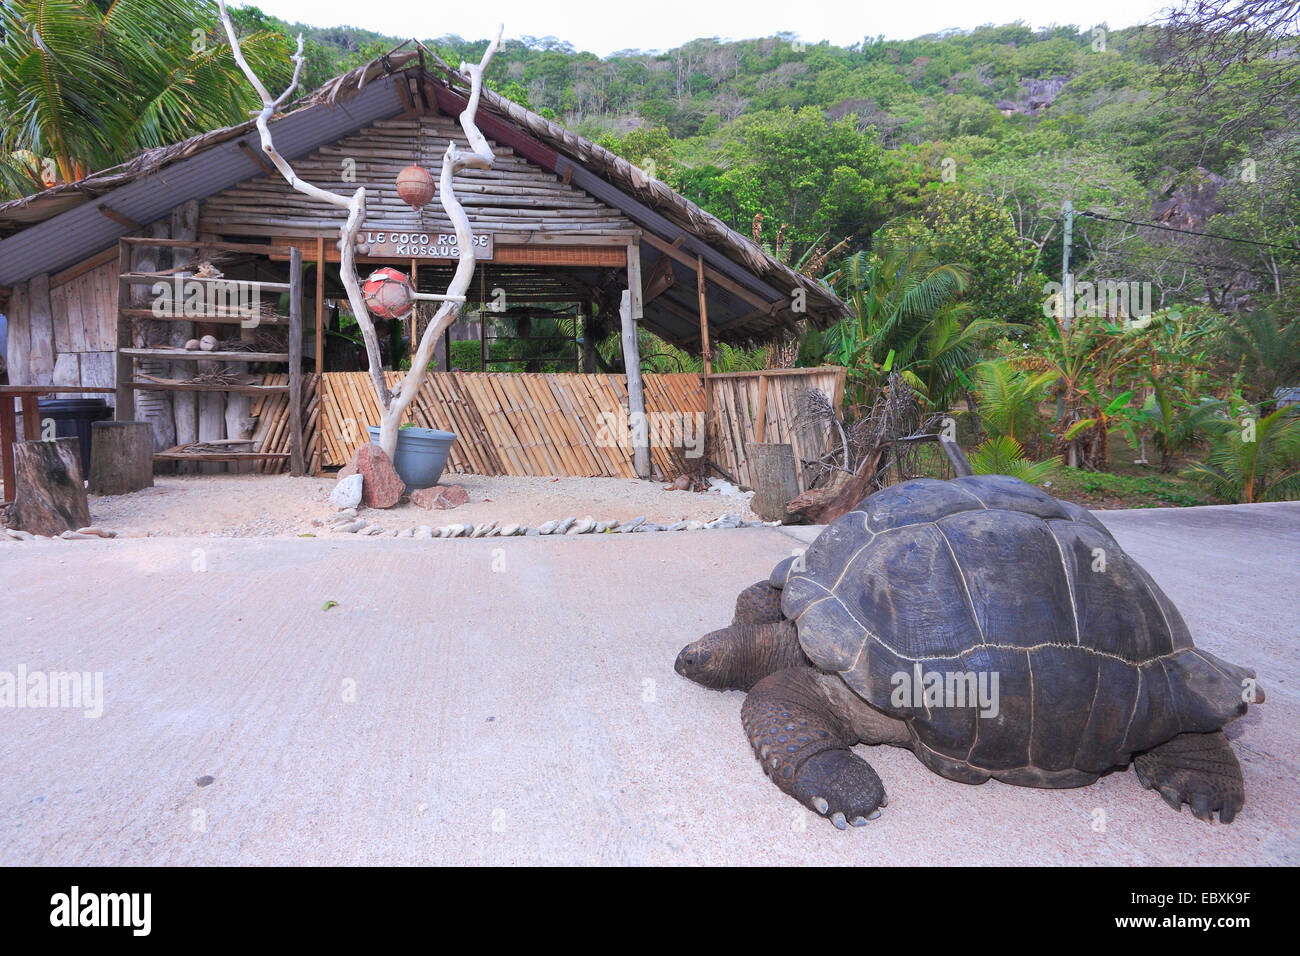 A free living giant tortoise moves on a road on the Seychelles island of La Digue - August 2013 - Stock Image